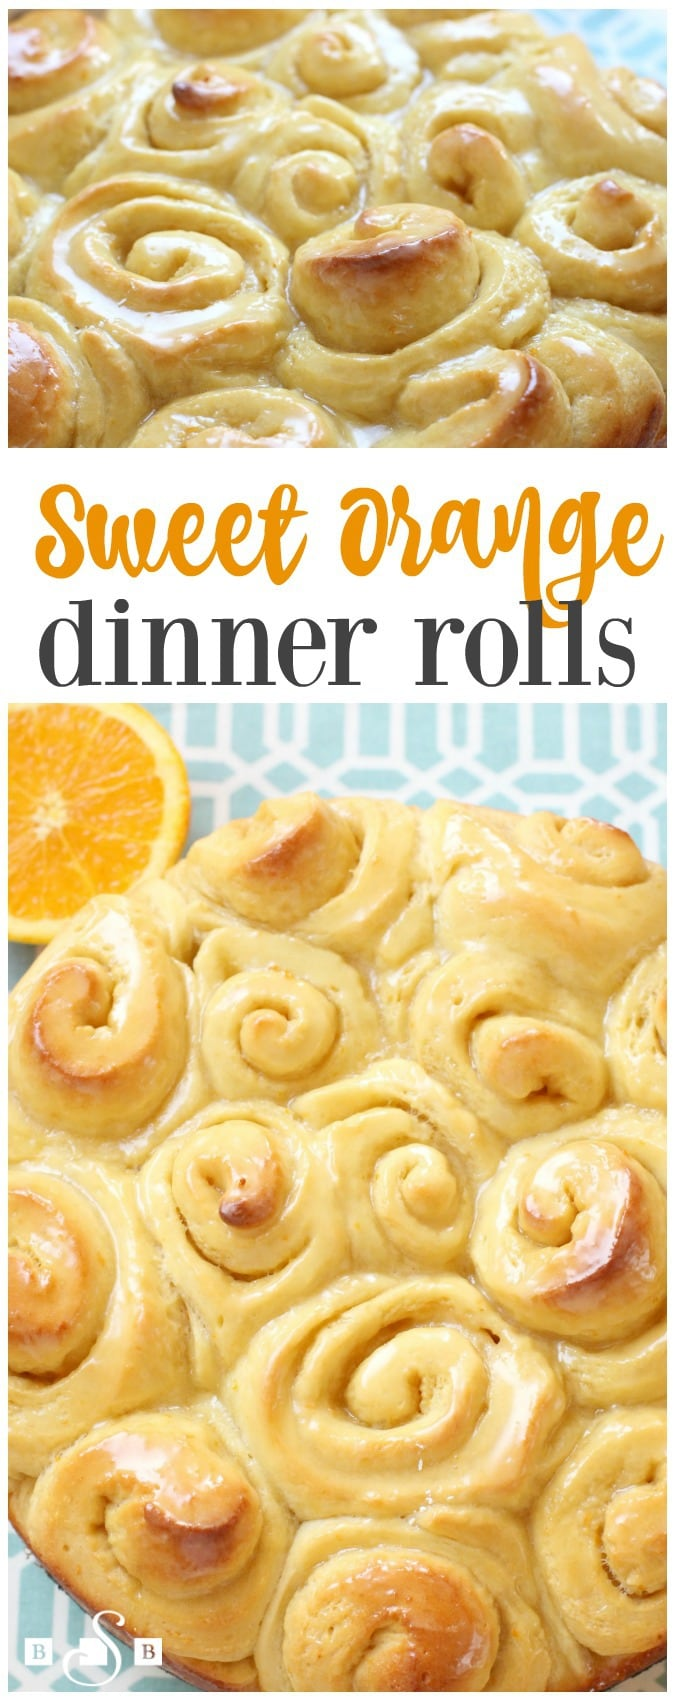 Sweet Orange Dinner Rolls are incredible homemade rolls with a bright, fresh orange flavor. Easy dinner roll recipe for lightly glazed and perfectly sweet dinner rolls!